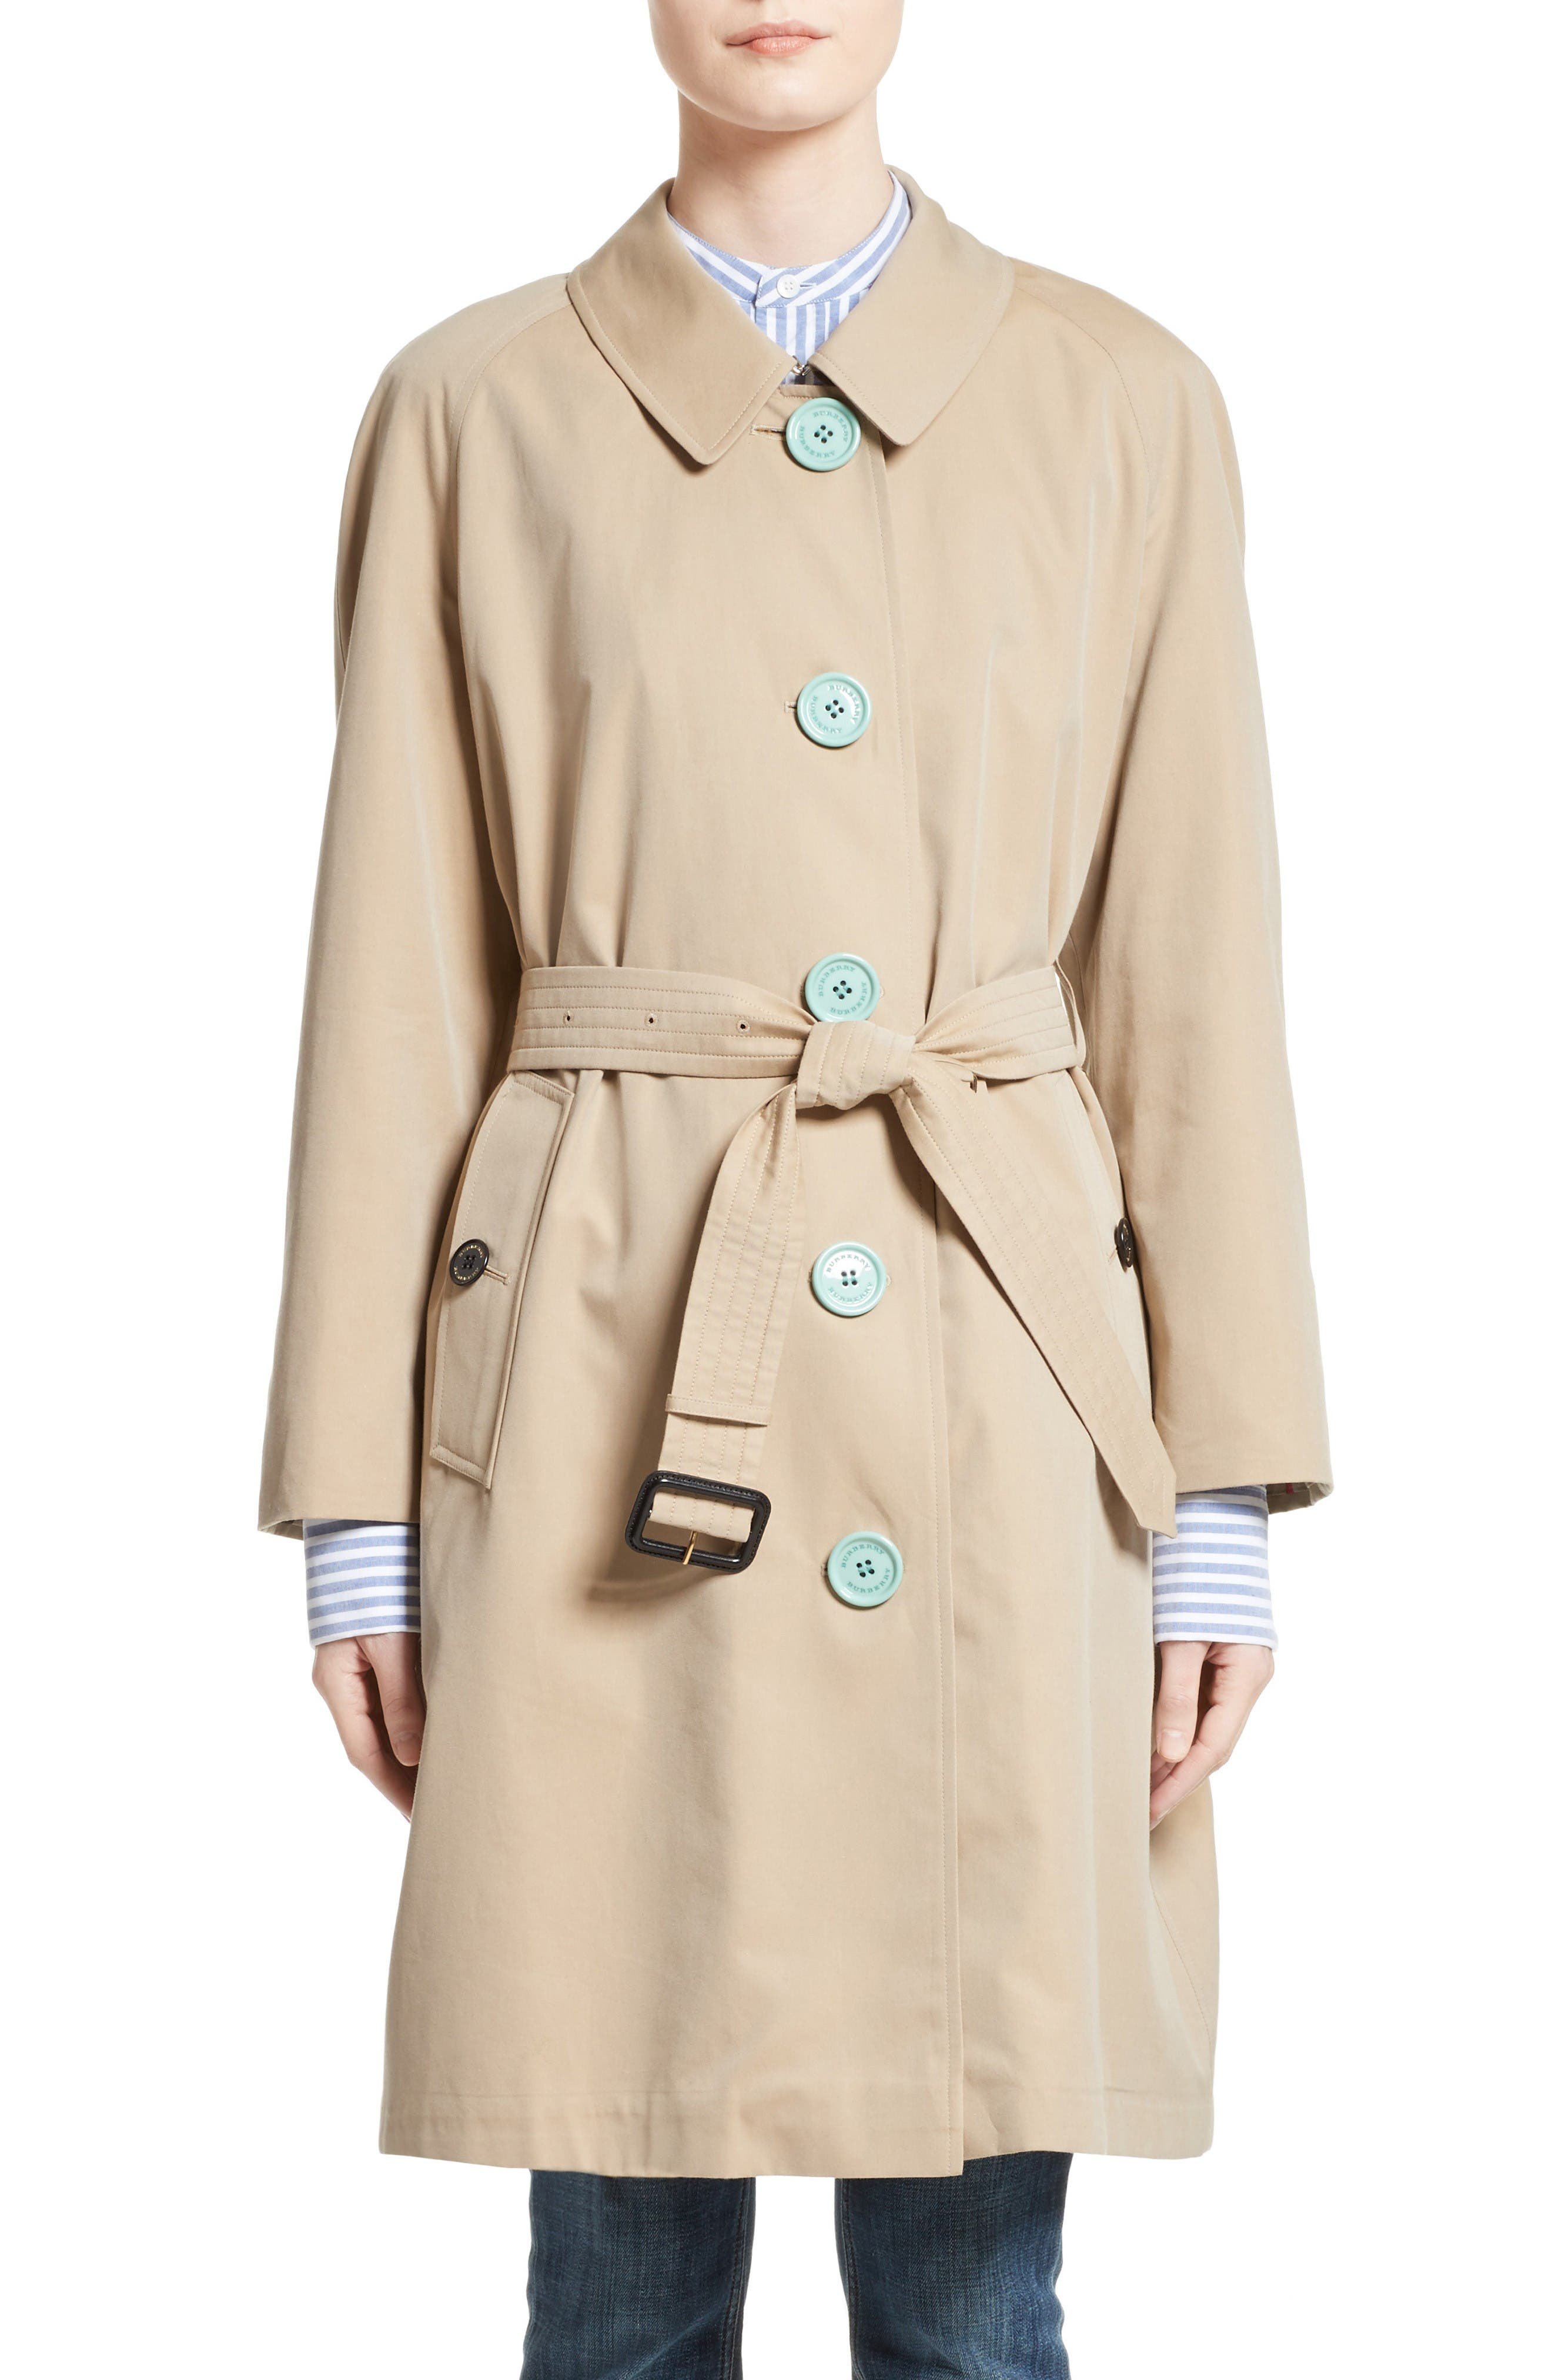 Brinkhill Trench Coat,                         Main,                         color, Honey